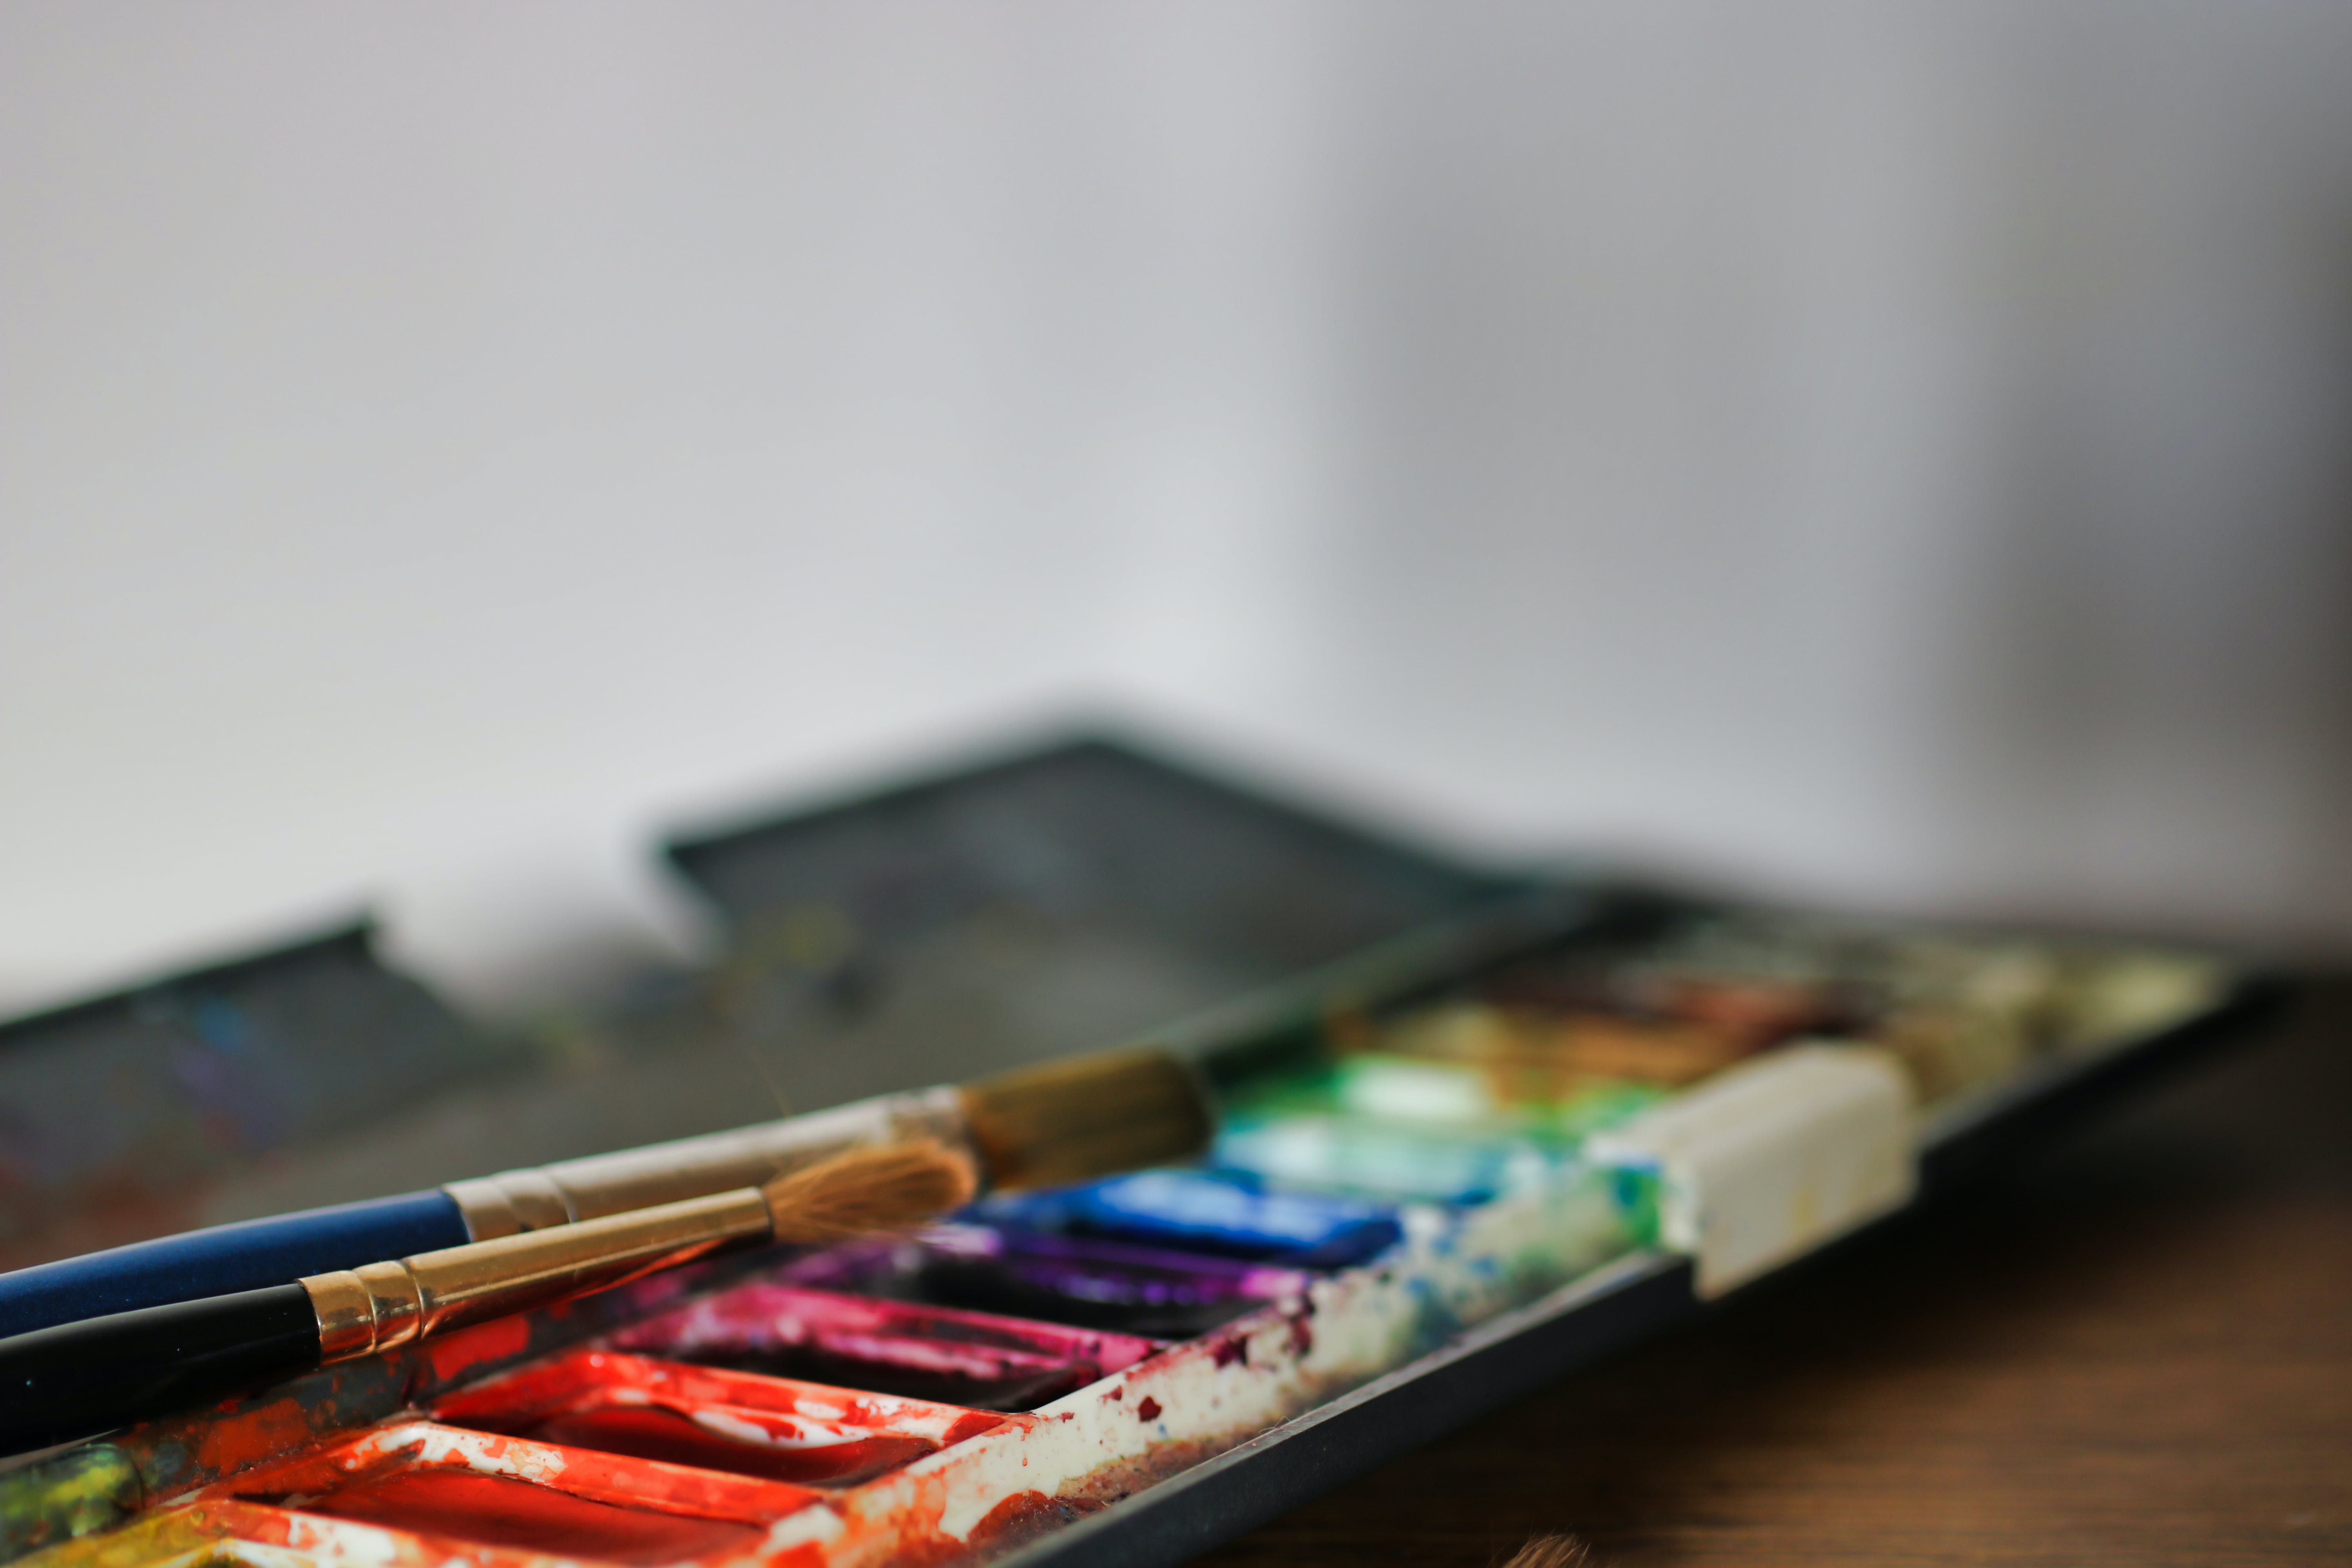 Selective Focus Photography of Paintbrushes and Palette